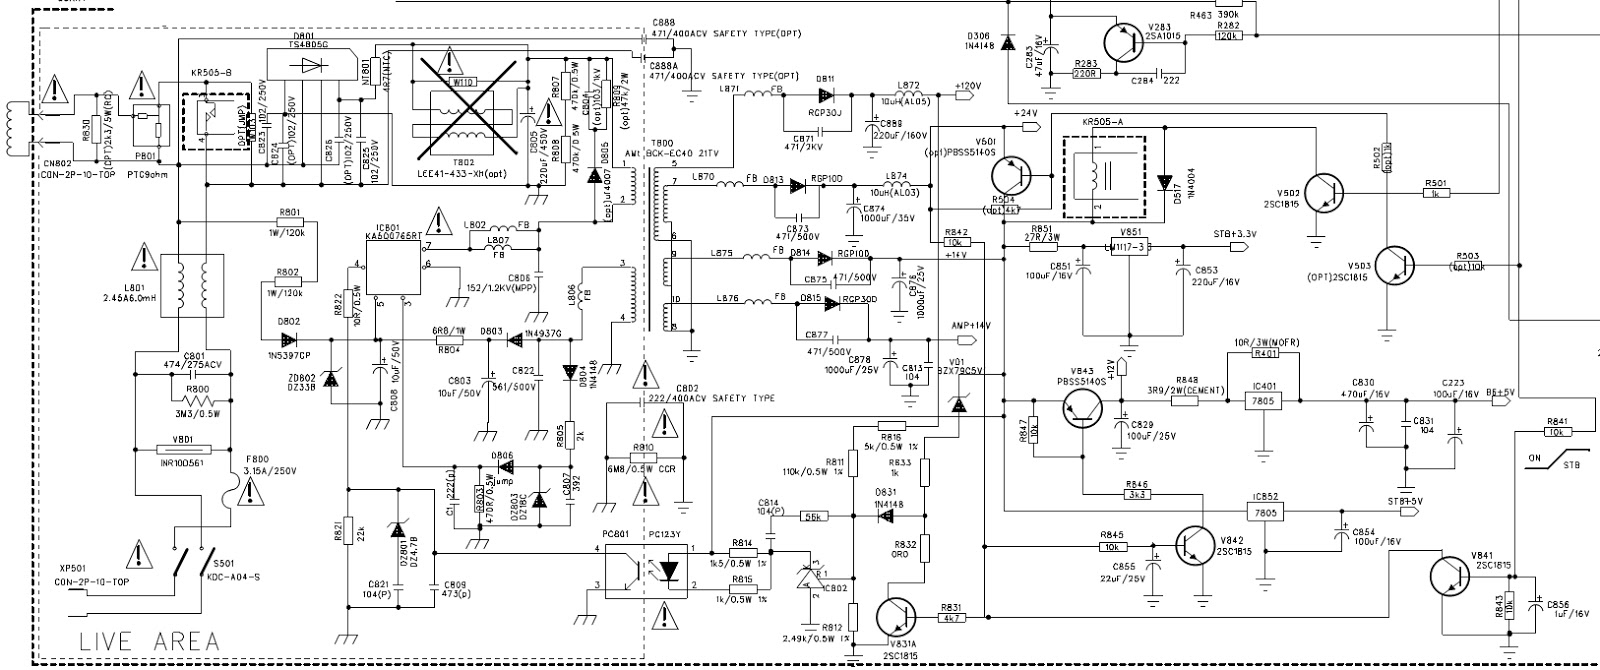 power supply circuit diagram click on schematic to zoom in [ 1600 x 670 Pixel ]